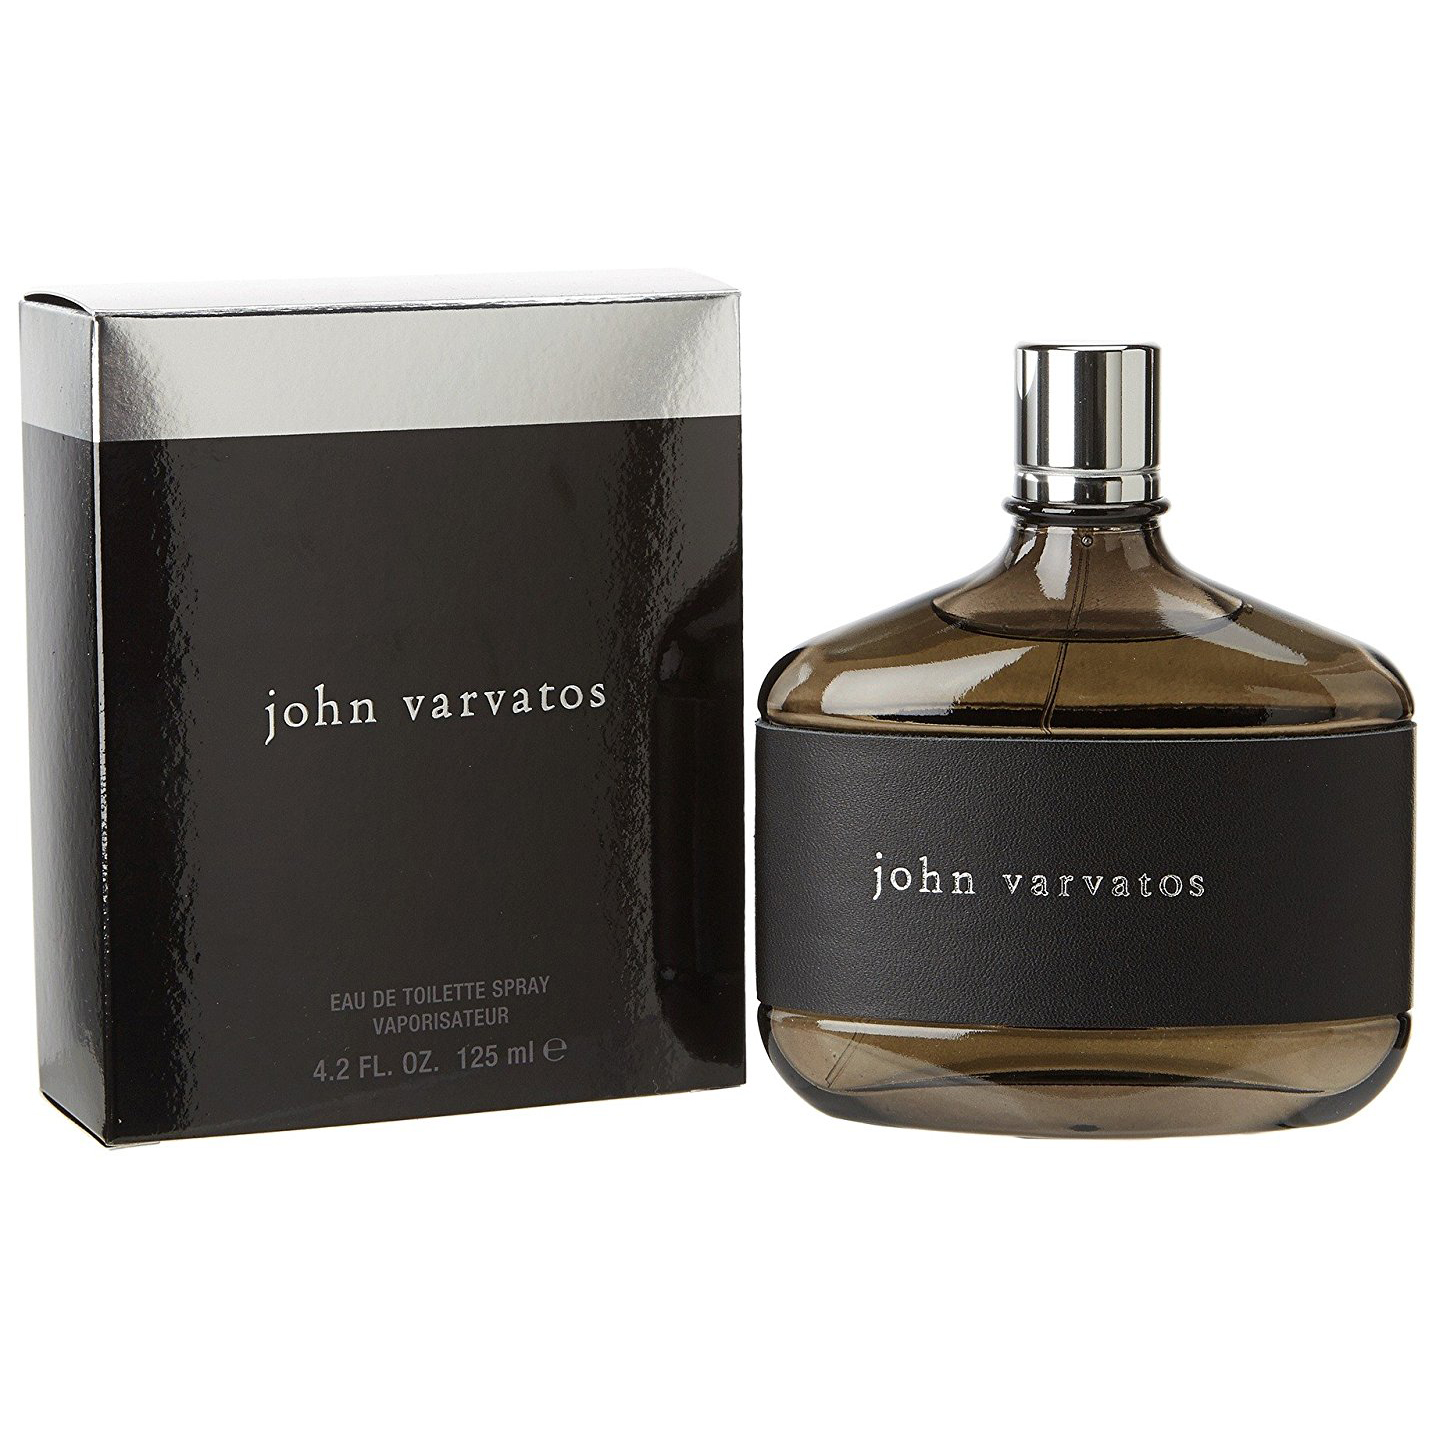 John Varvatos men